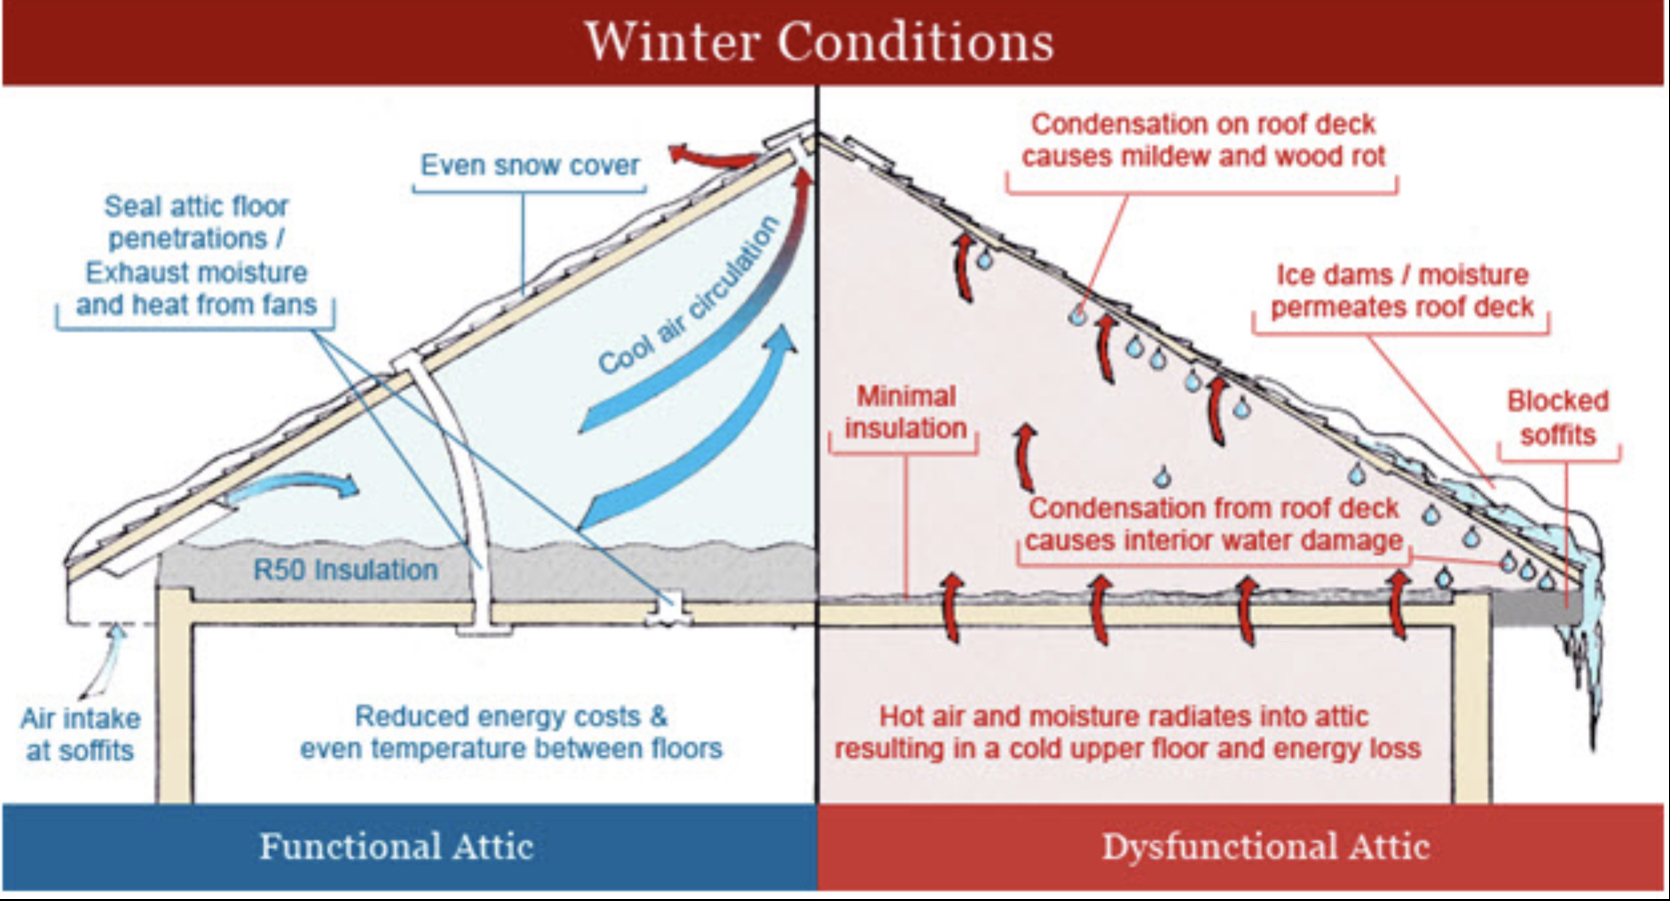 Illustrated diagram of proper insulation an roof and attic ventilation